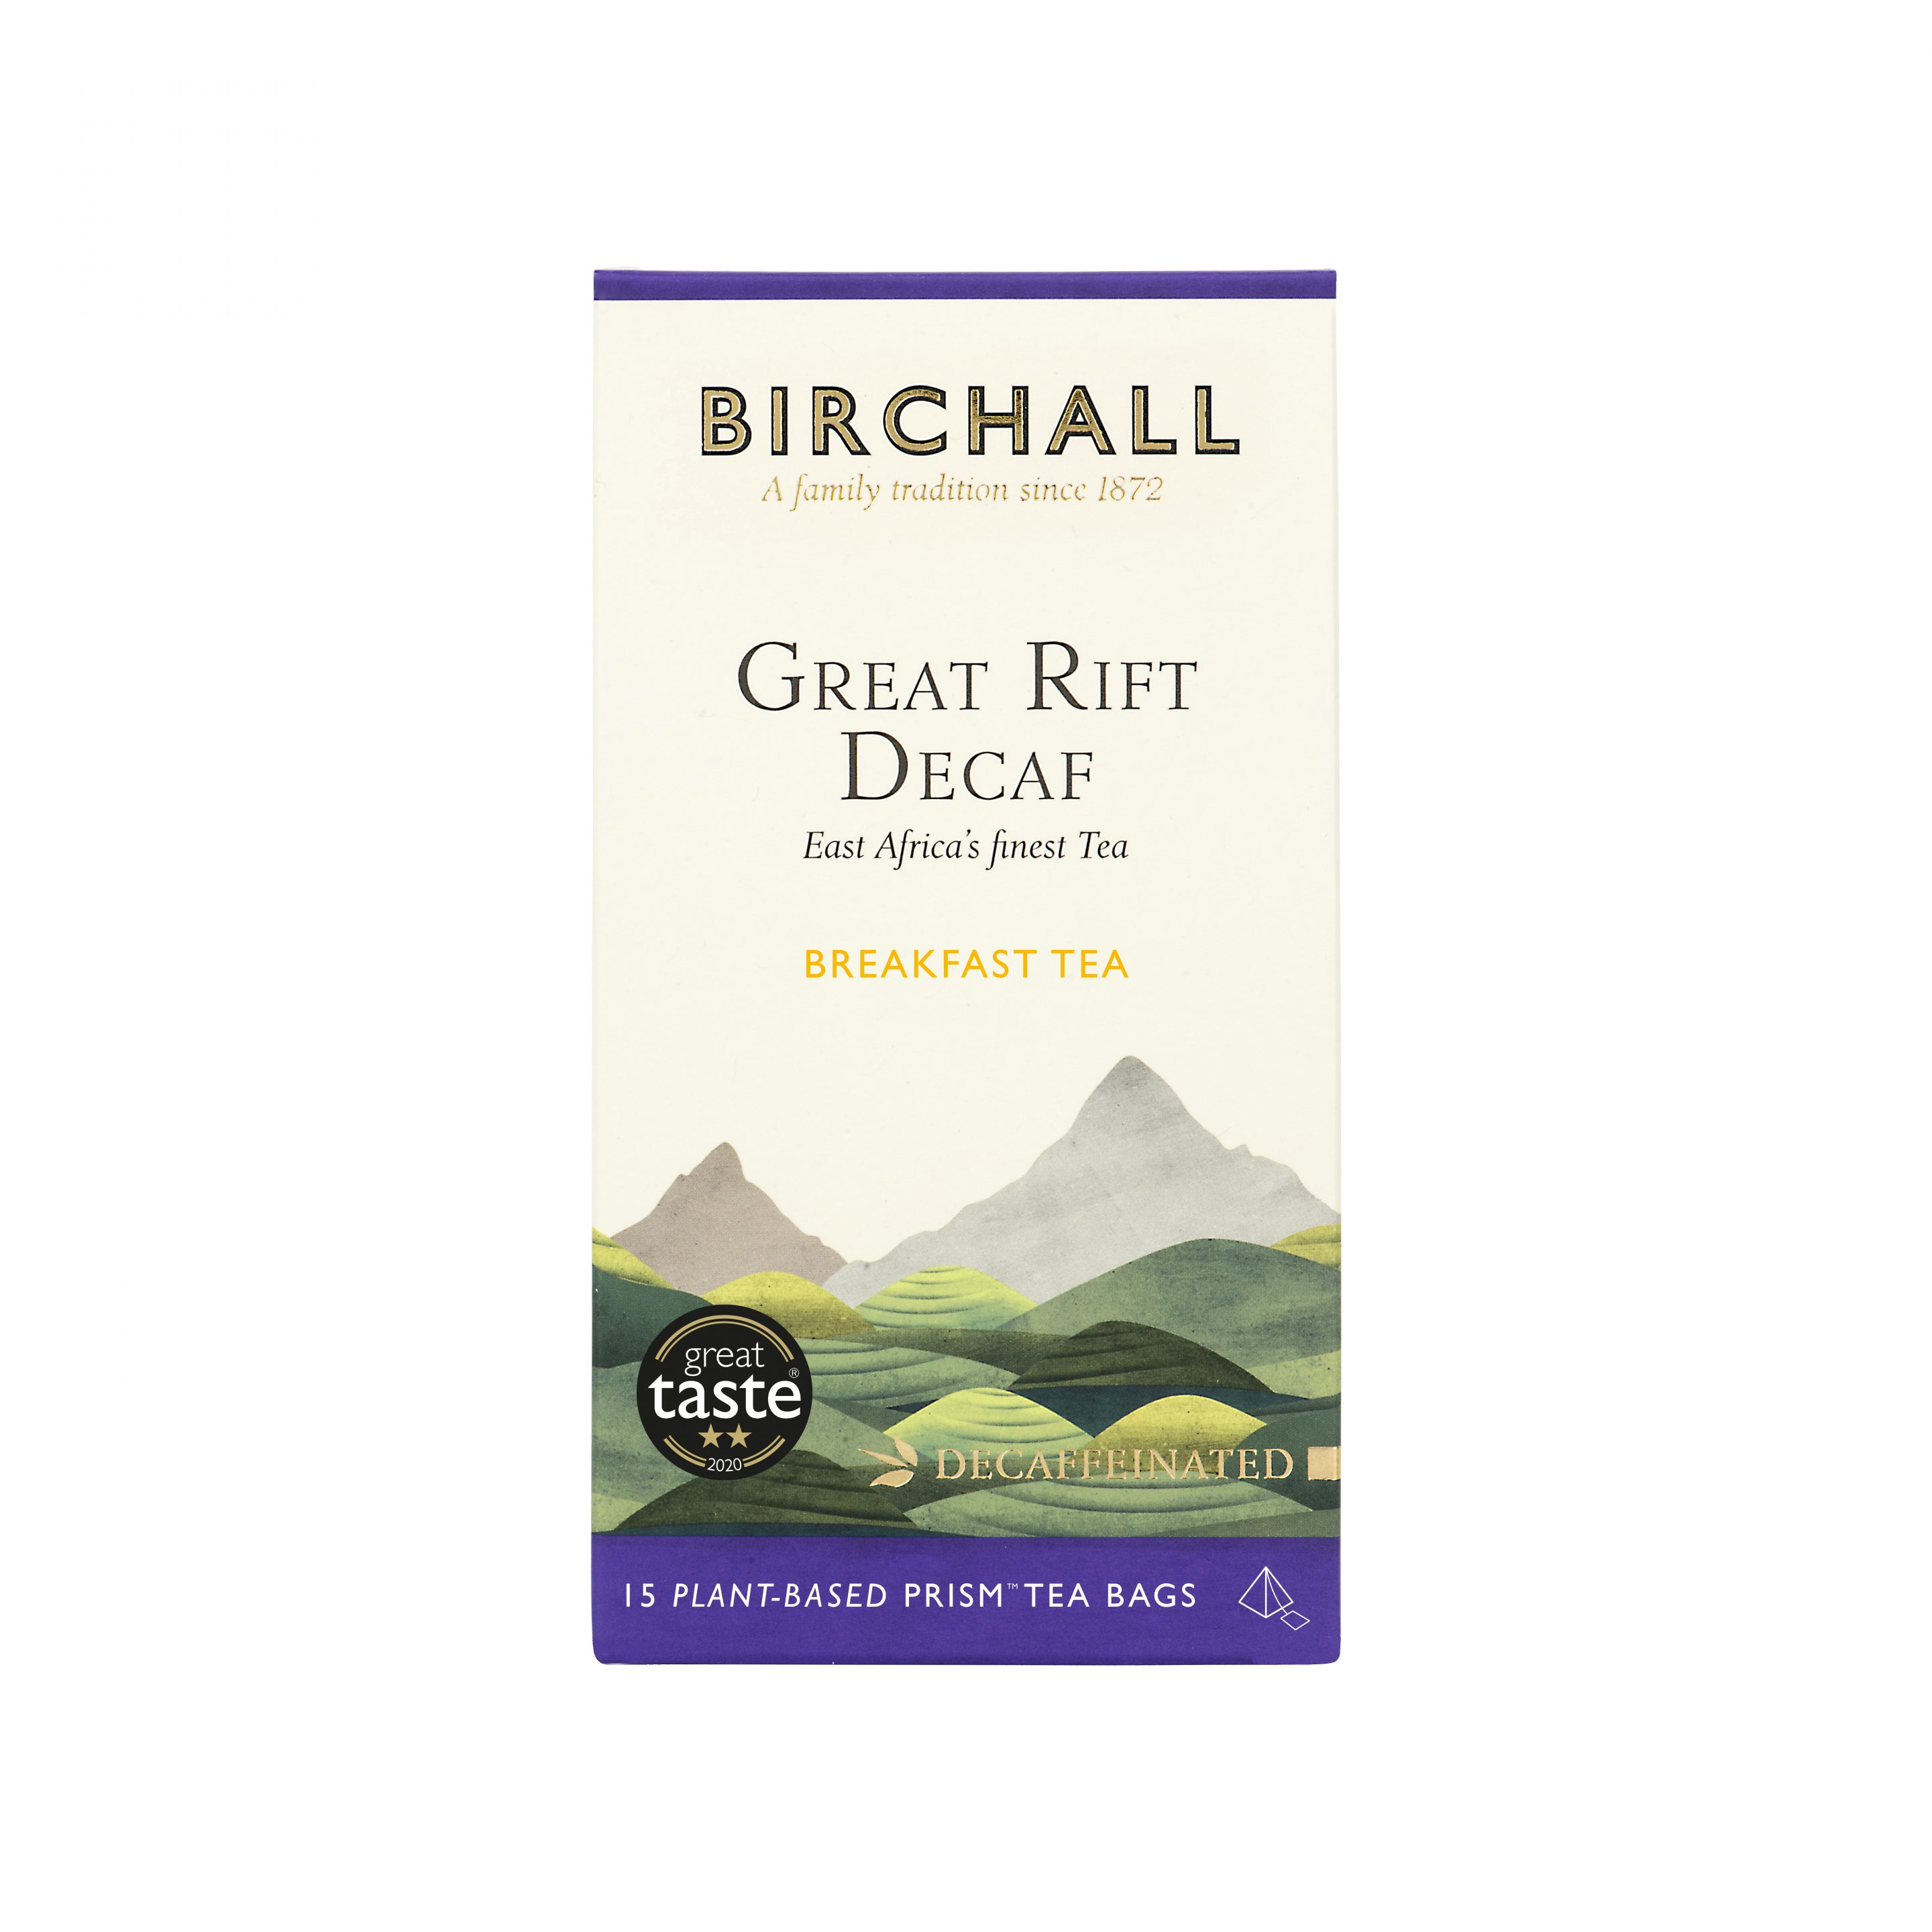 Great Rift Decaf